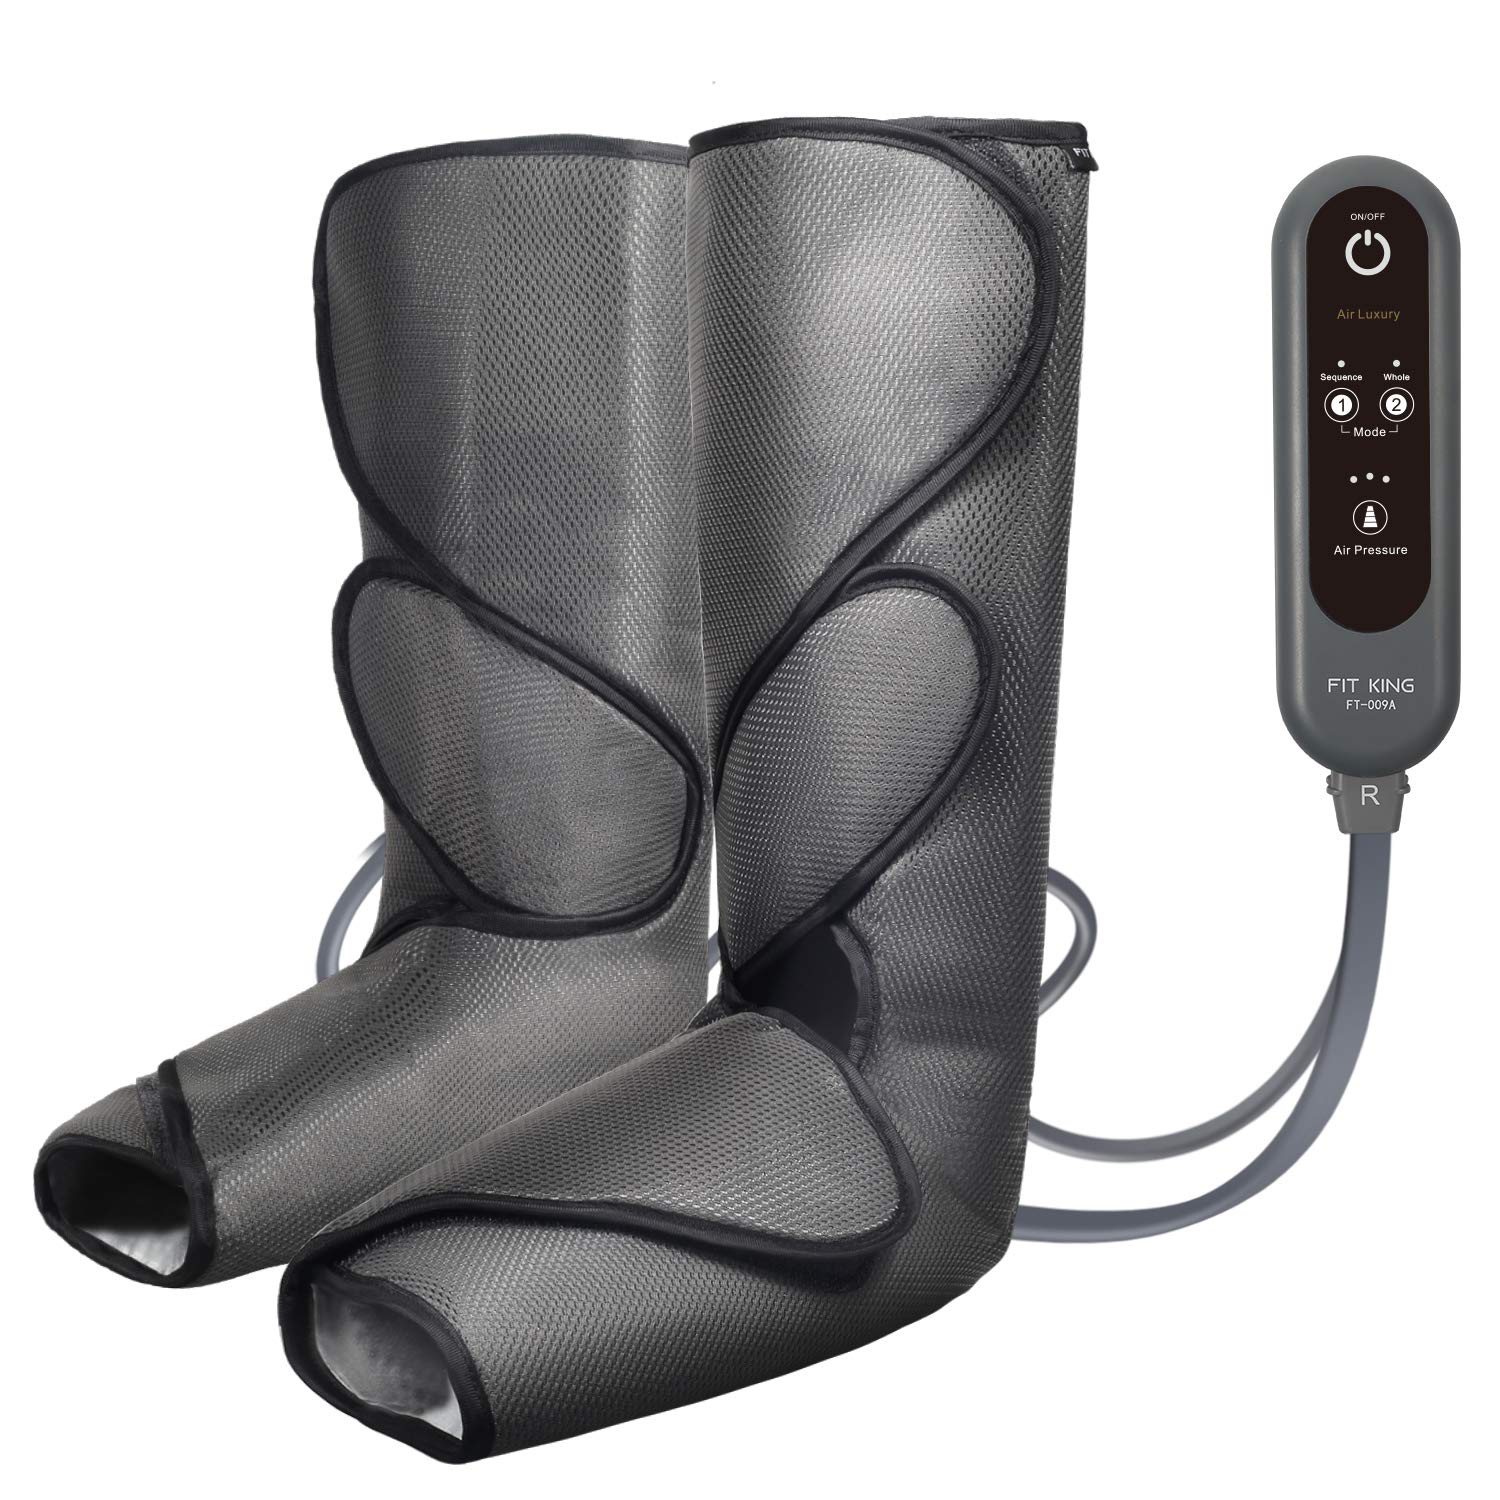 FIT KING Leg Air Massager review